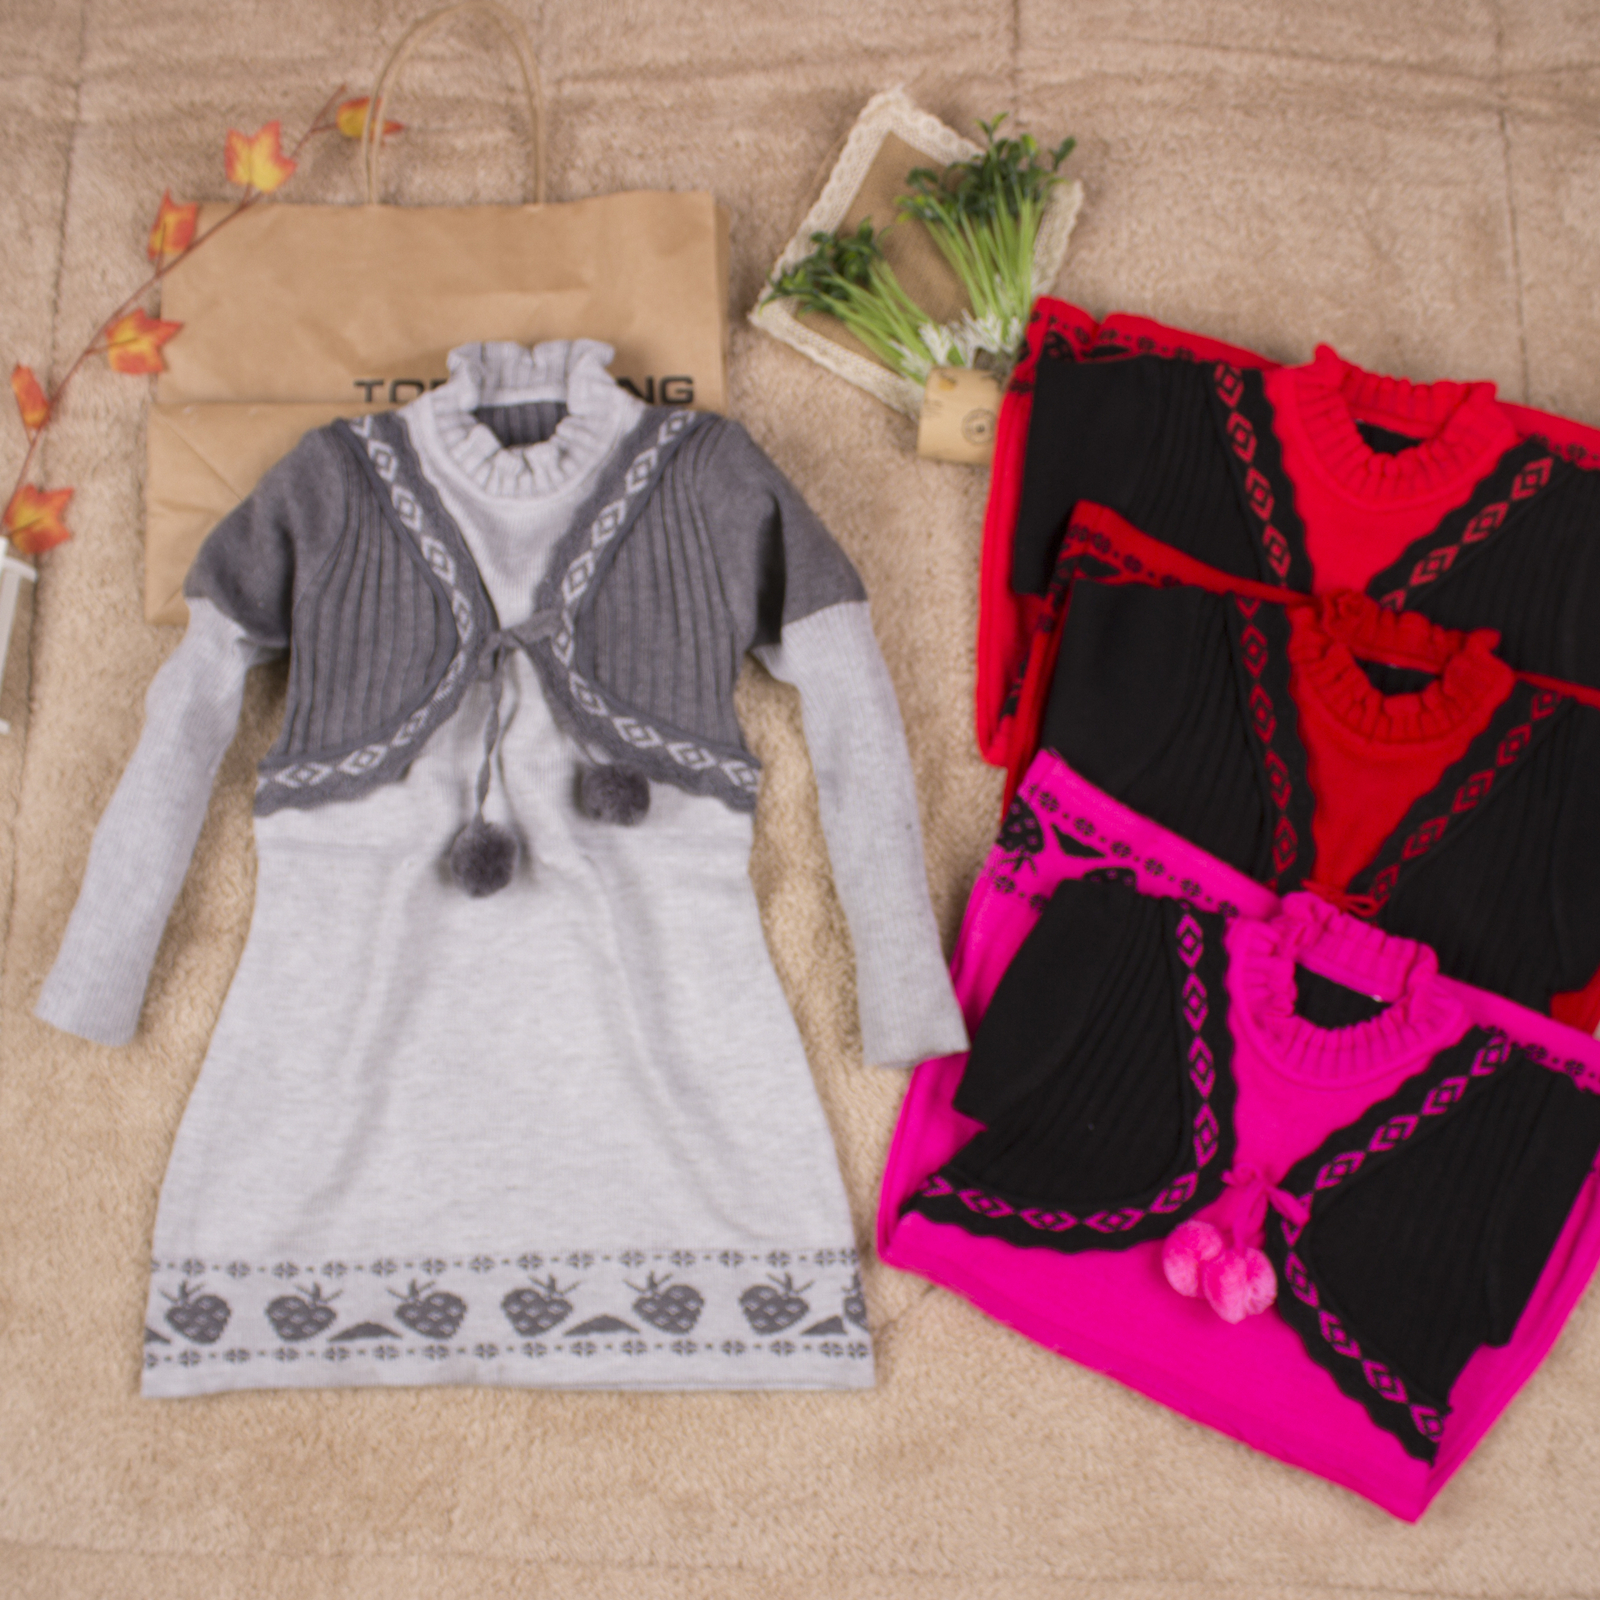 Russia style Girls Knitted Sweater Dress Long Sleeve Kids Princess Costumes Children Roupas Infantil ropa para ninas usb mame